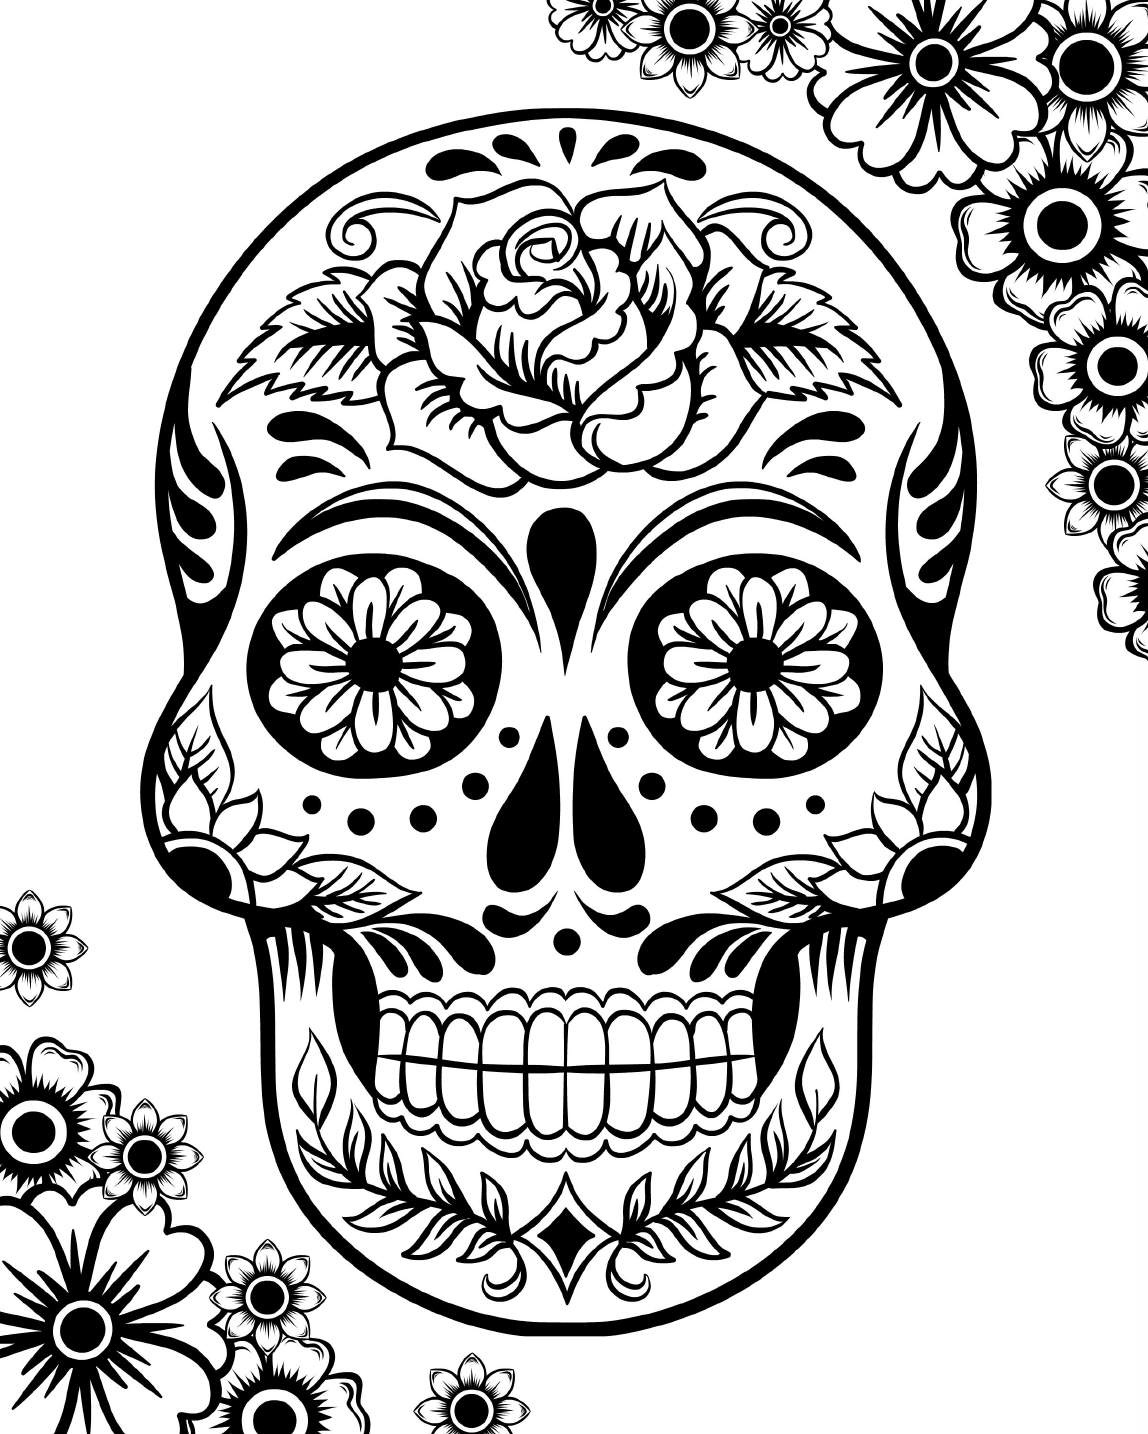 skull colouring pictures mexican sugar skull coloring pages at getdrawings free colouring skull pictures